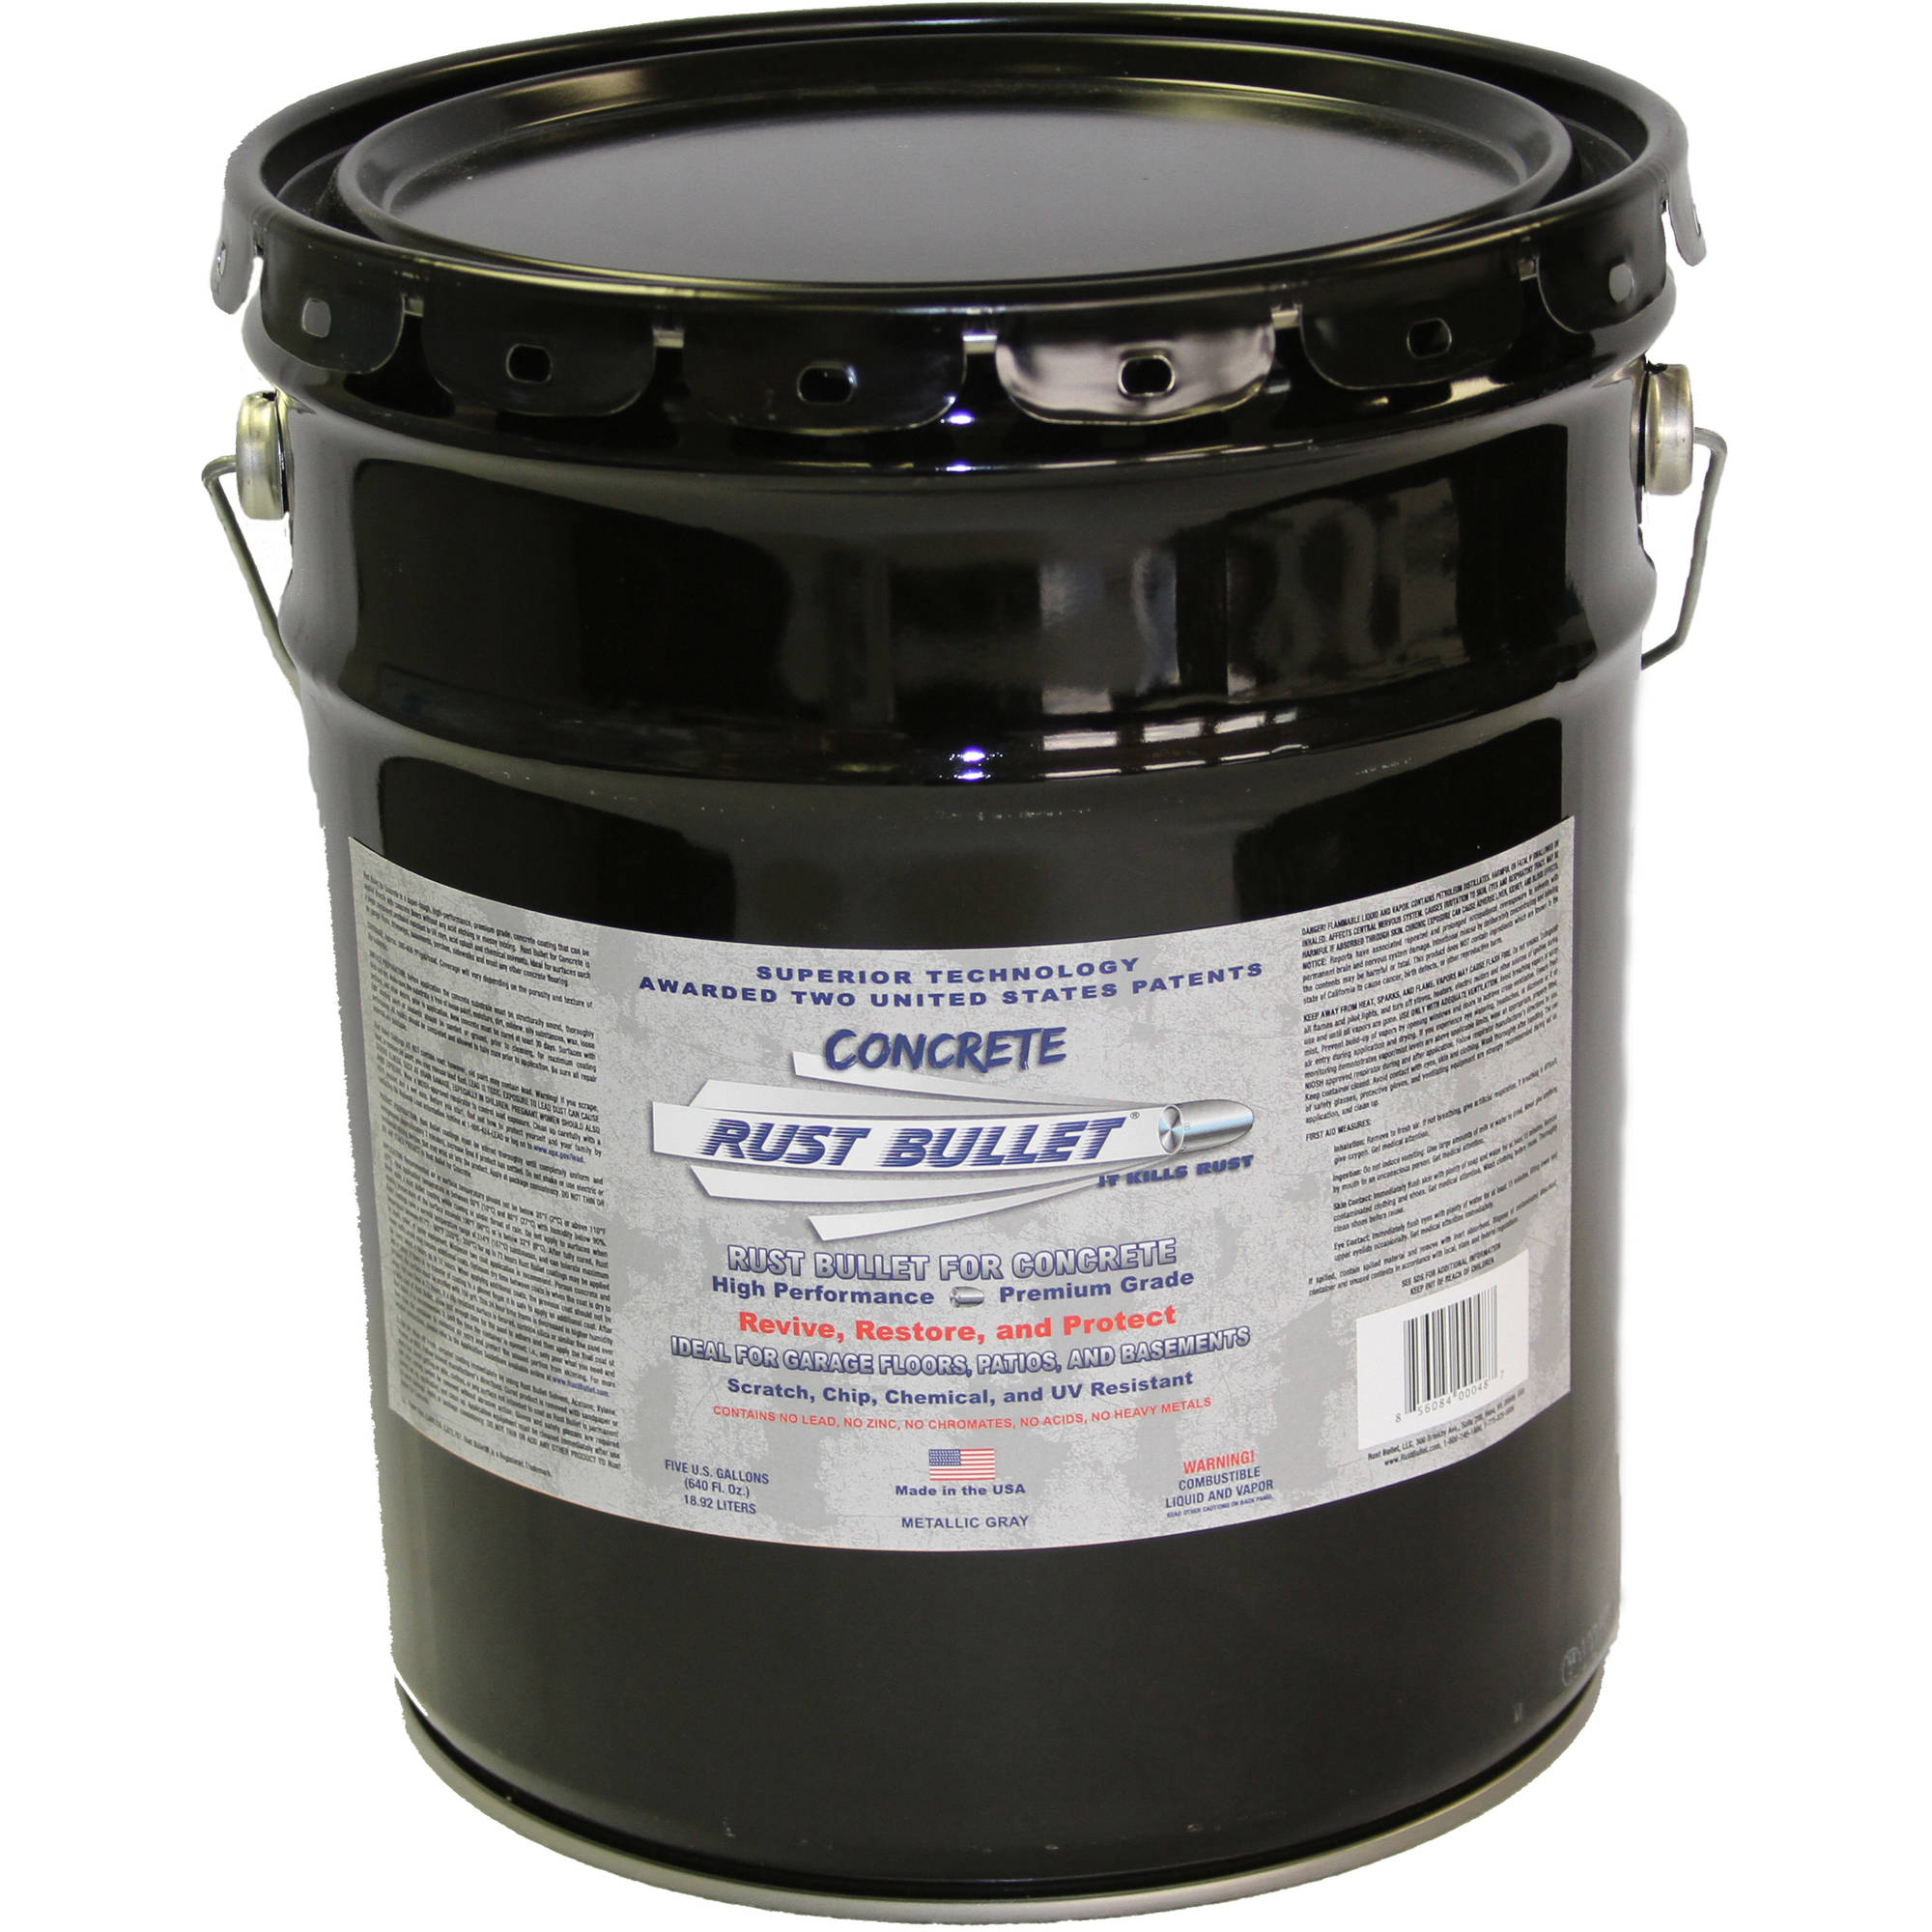 Rust Bullet For Concrete, Protective Floor Coating, 5-Gallon Pail